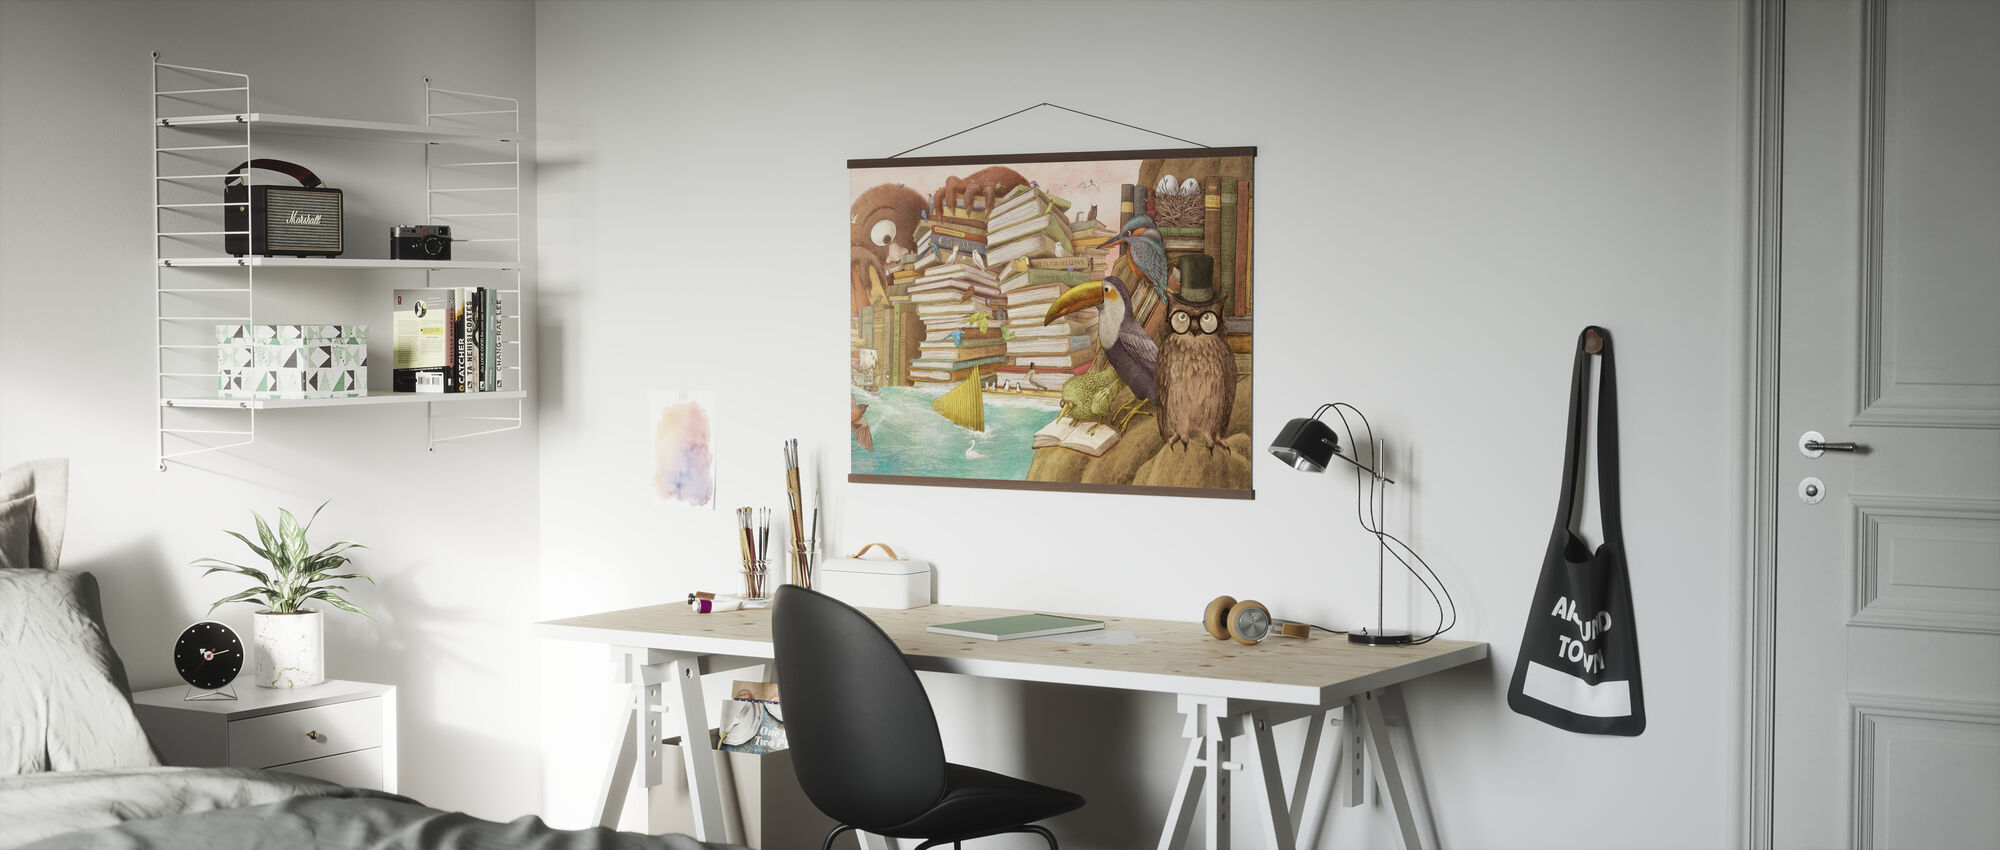 Ocean Meets Sky Library Islands - Poster - Office